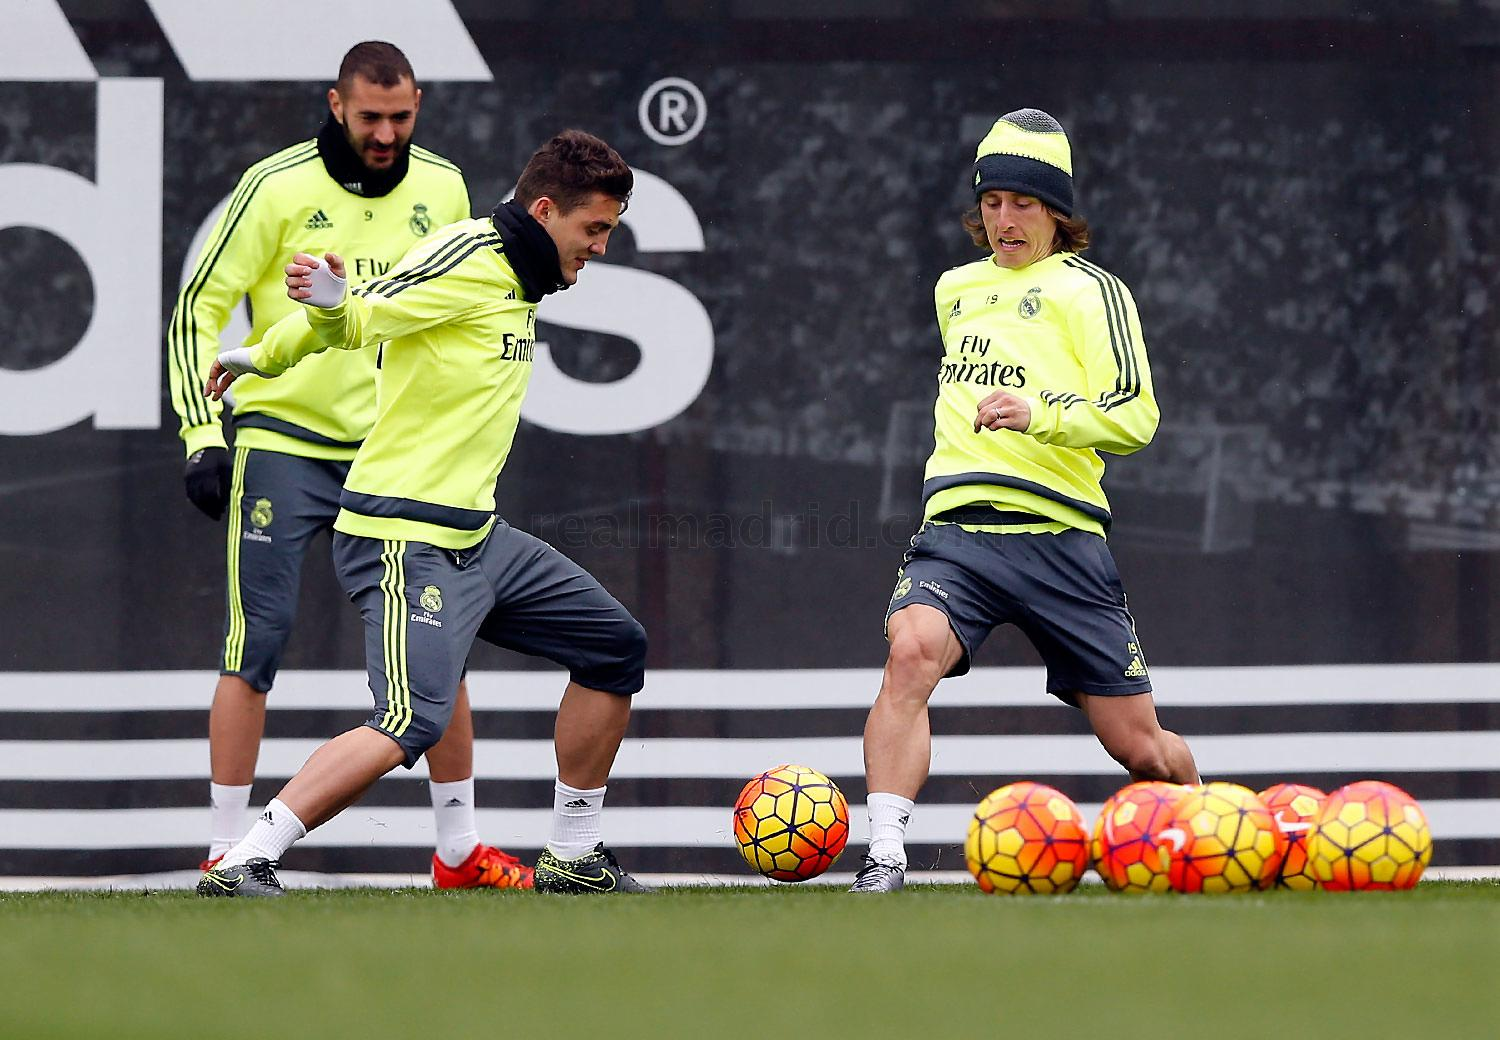 Real Madrid - Entrenamiento del Real Madrid - 12-02-2016